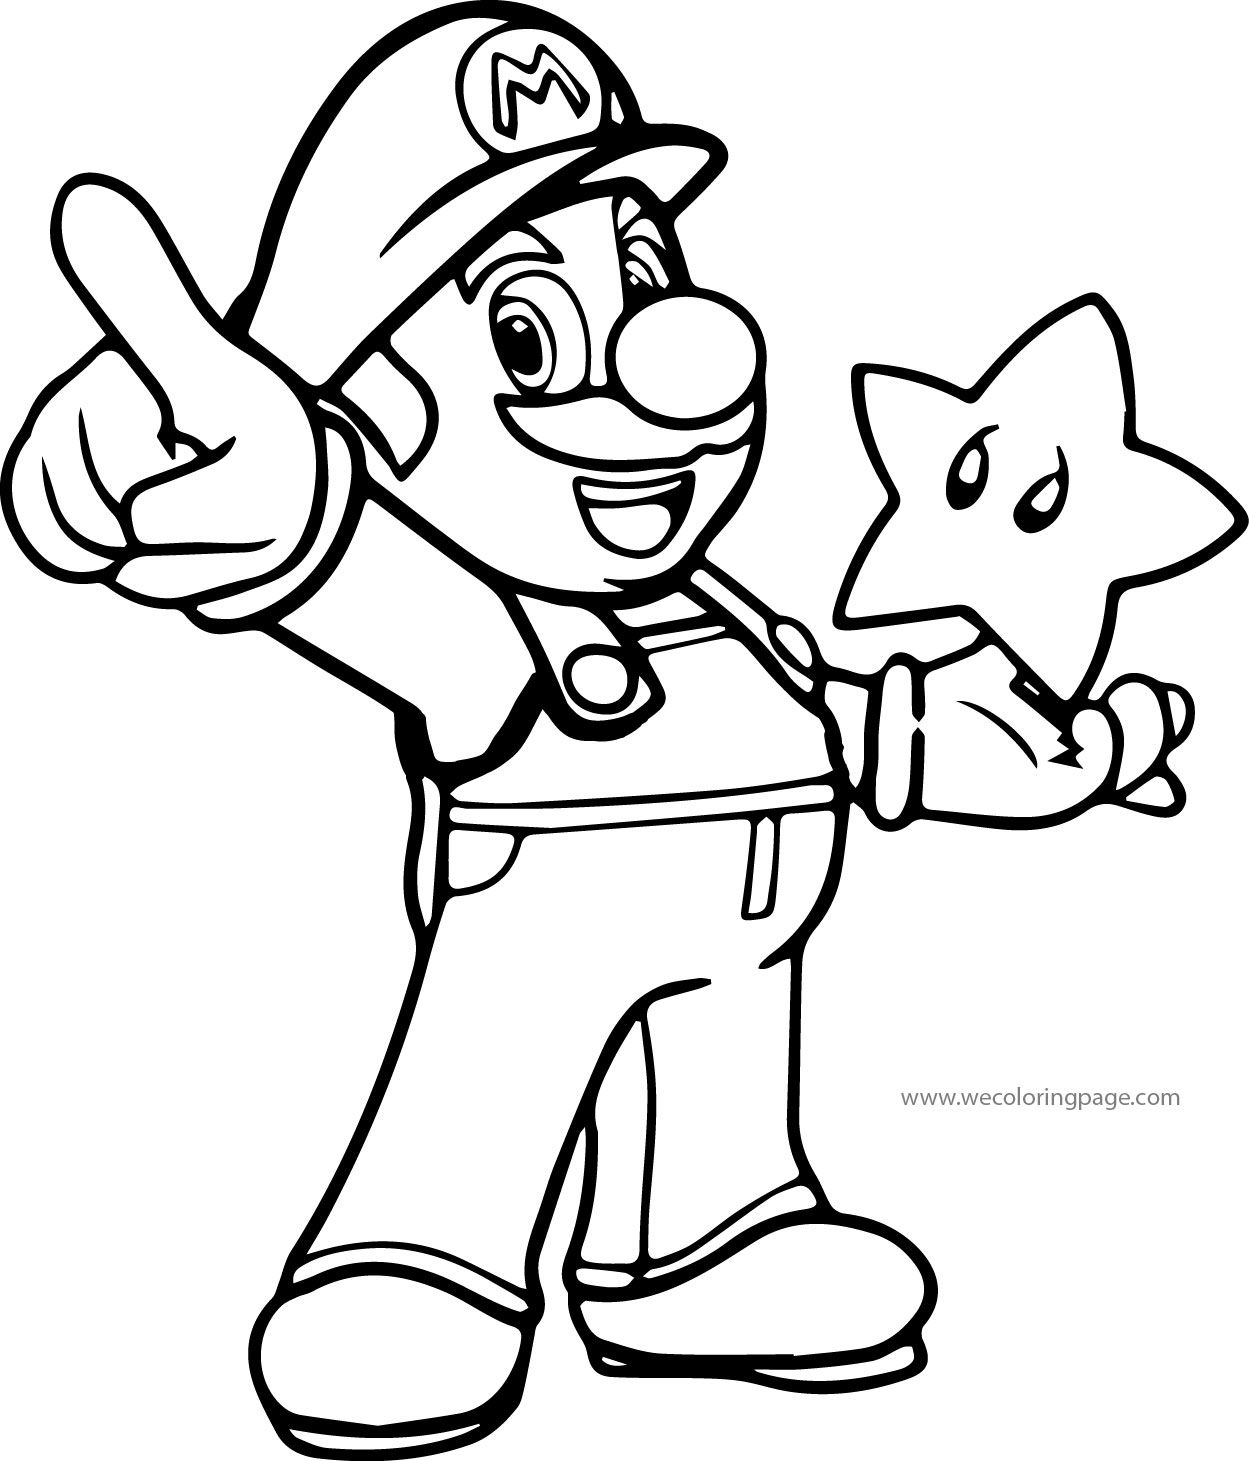 Super Mario Coloring Page | Mario bros, Coloring books and Birthdays